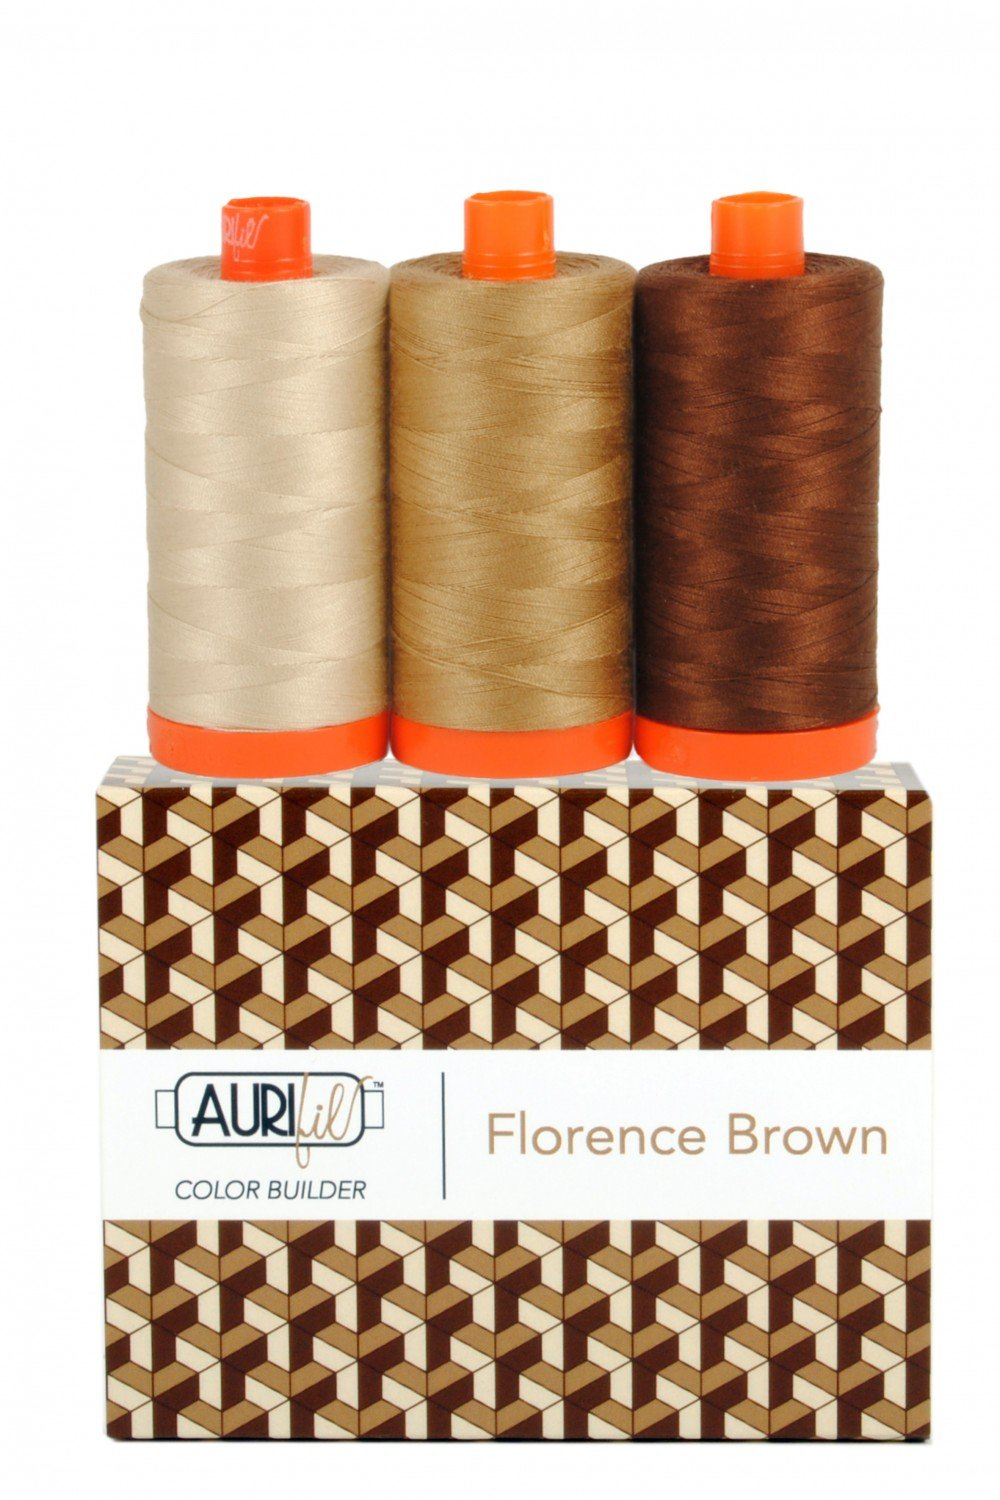 Aurifil Color Builder 3pc Set - Florence Brown